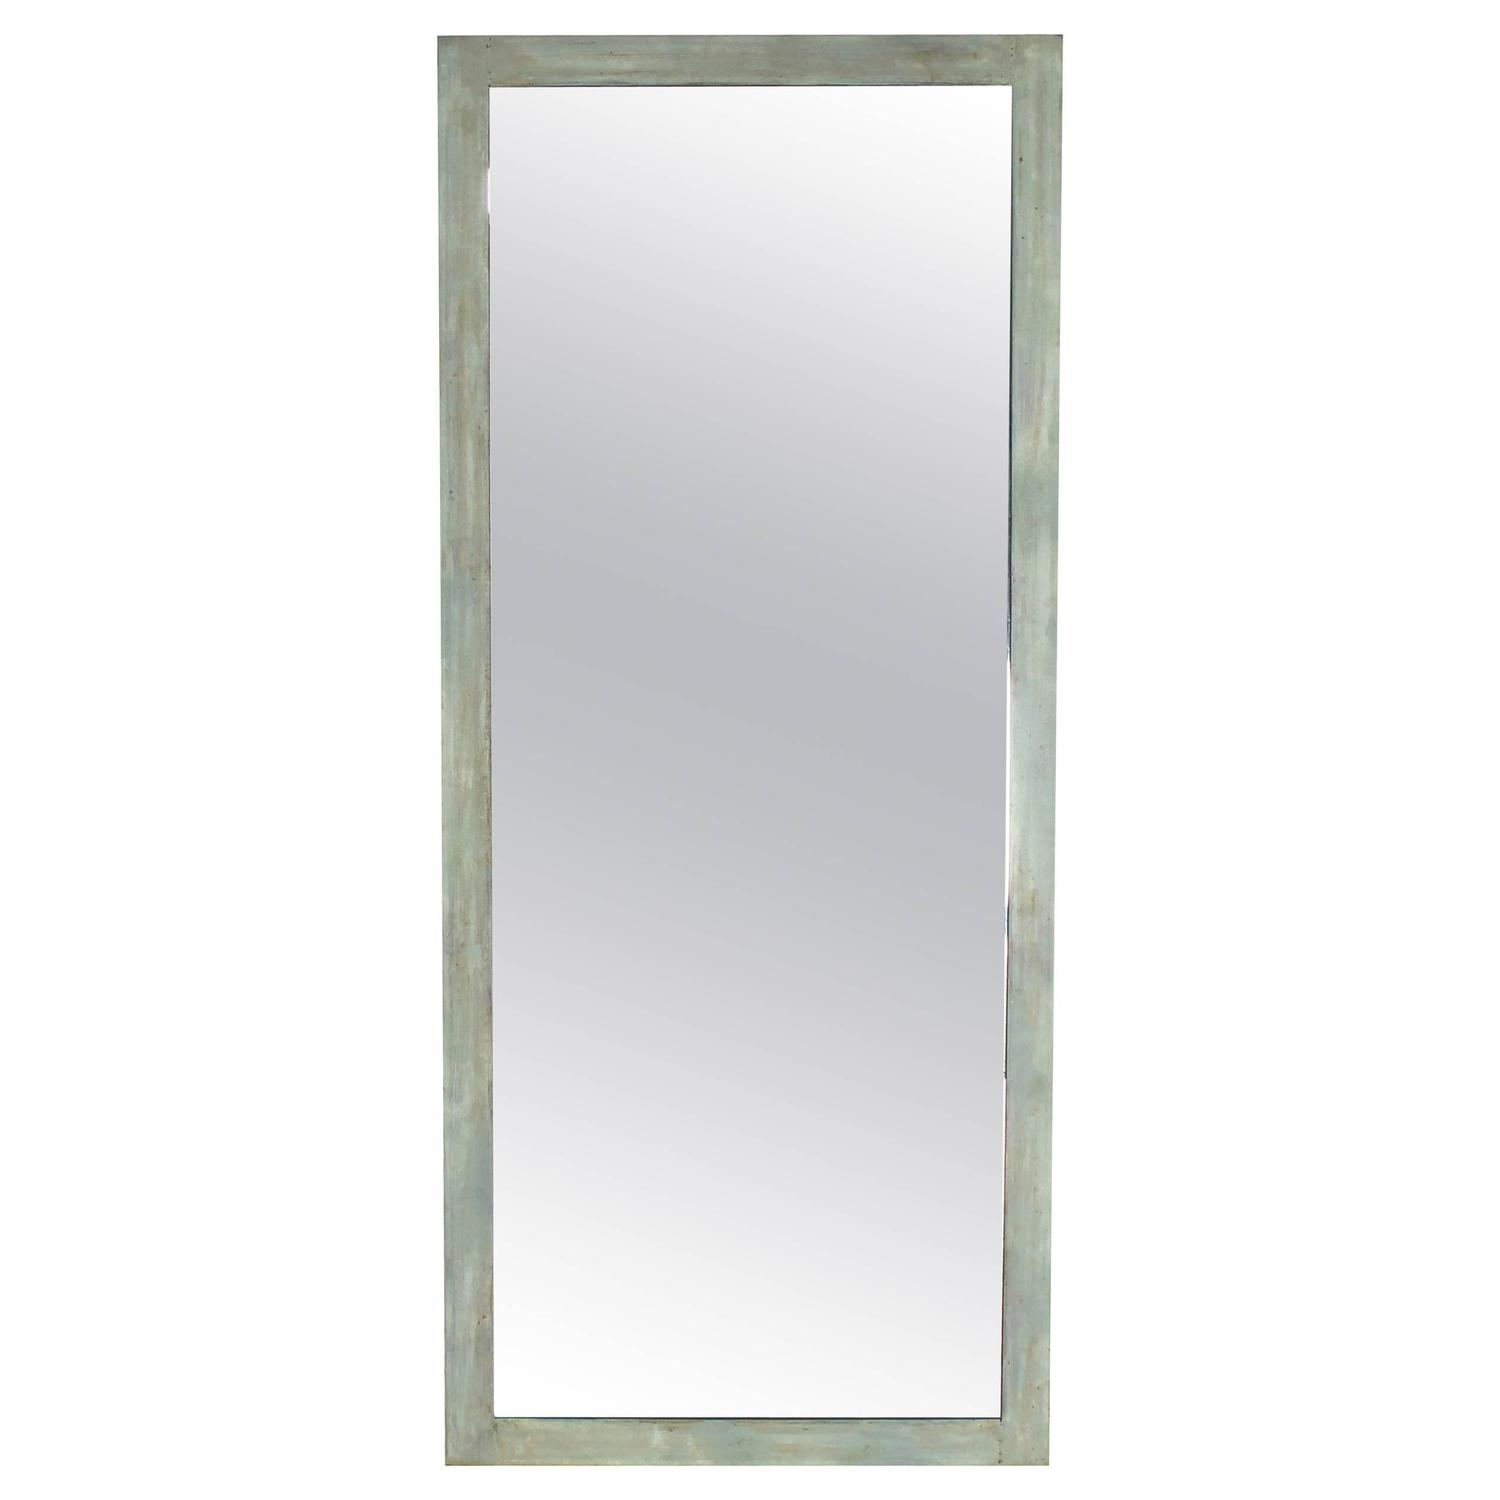 Large wall mirror for sale at 1stdibs for Large wall mirrors for sale